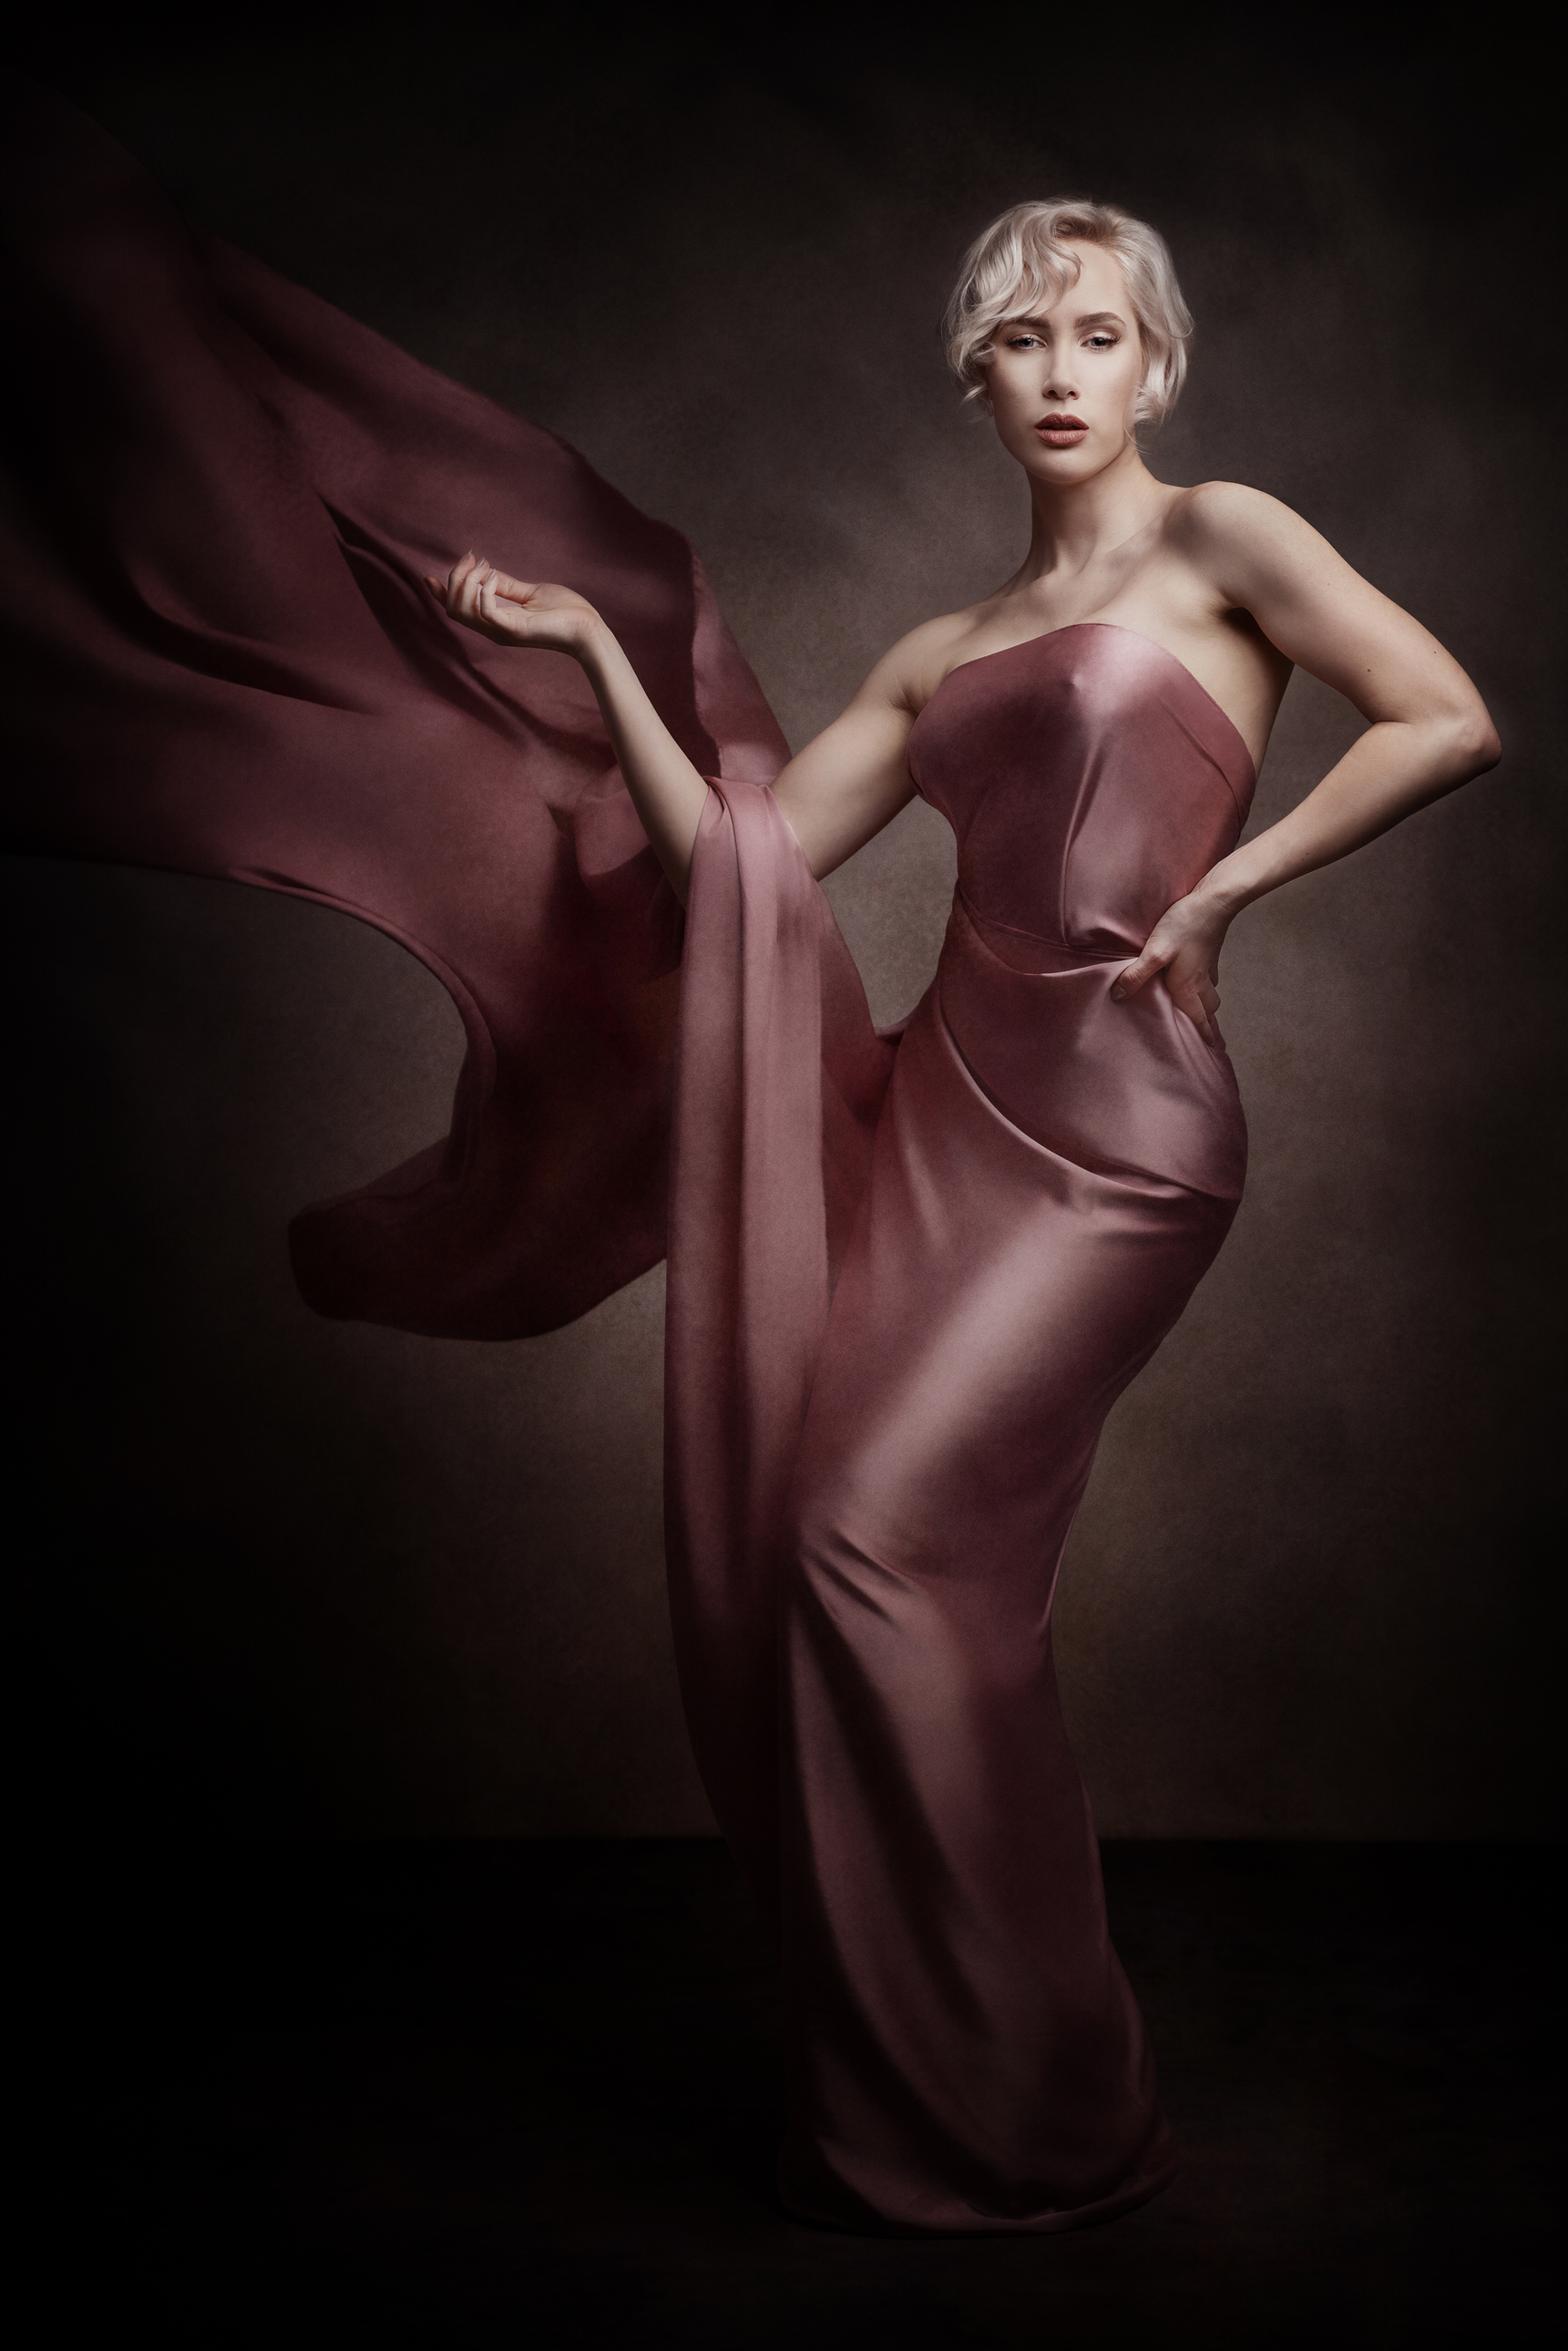 Blonde model in silk fabric by Boudoir Photographer Lancashire